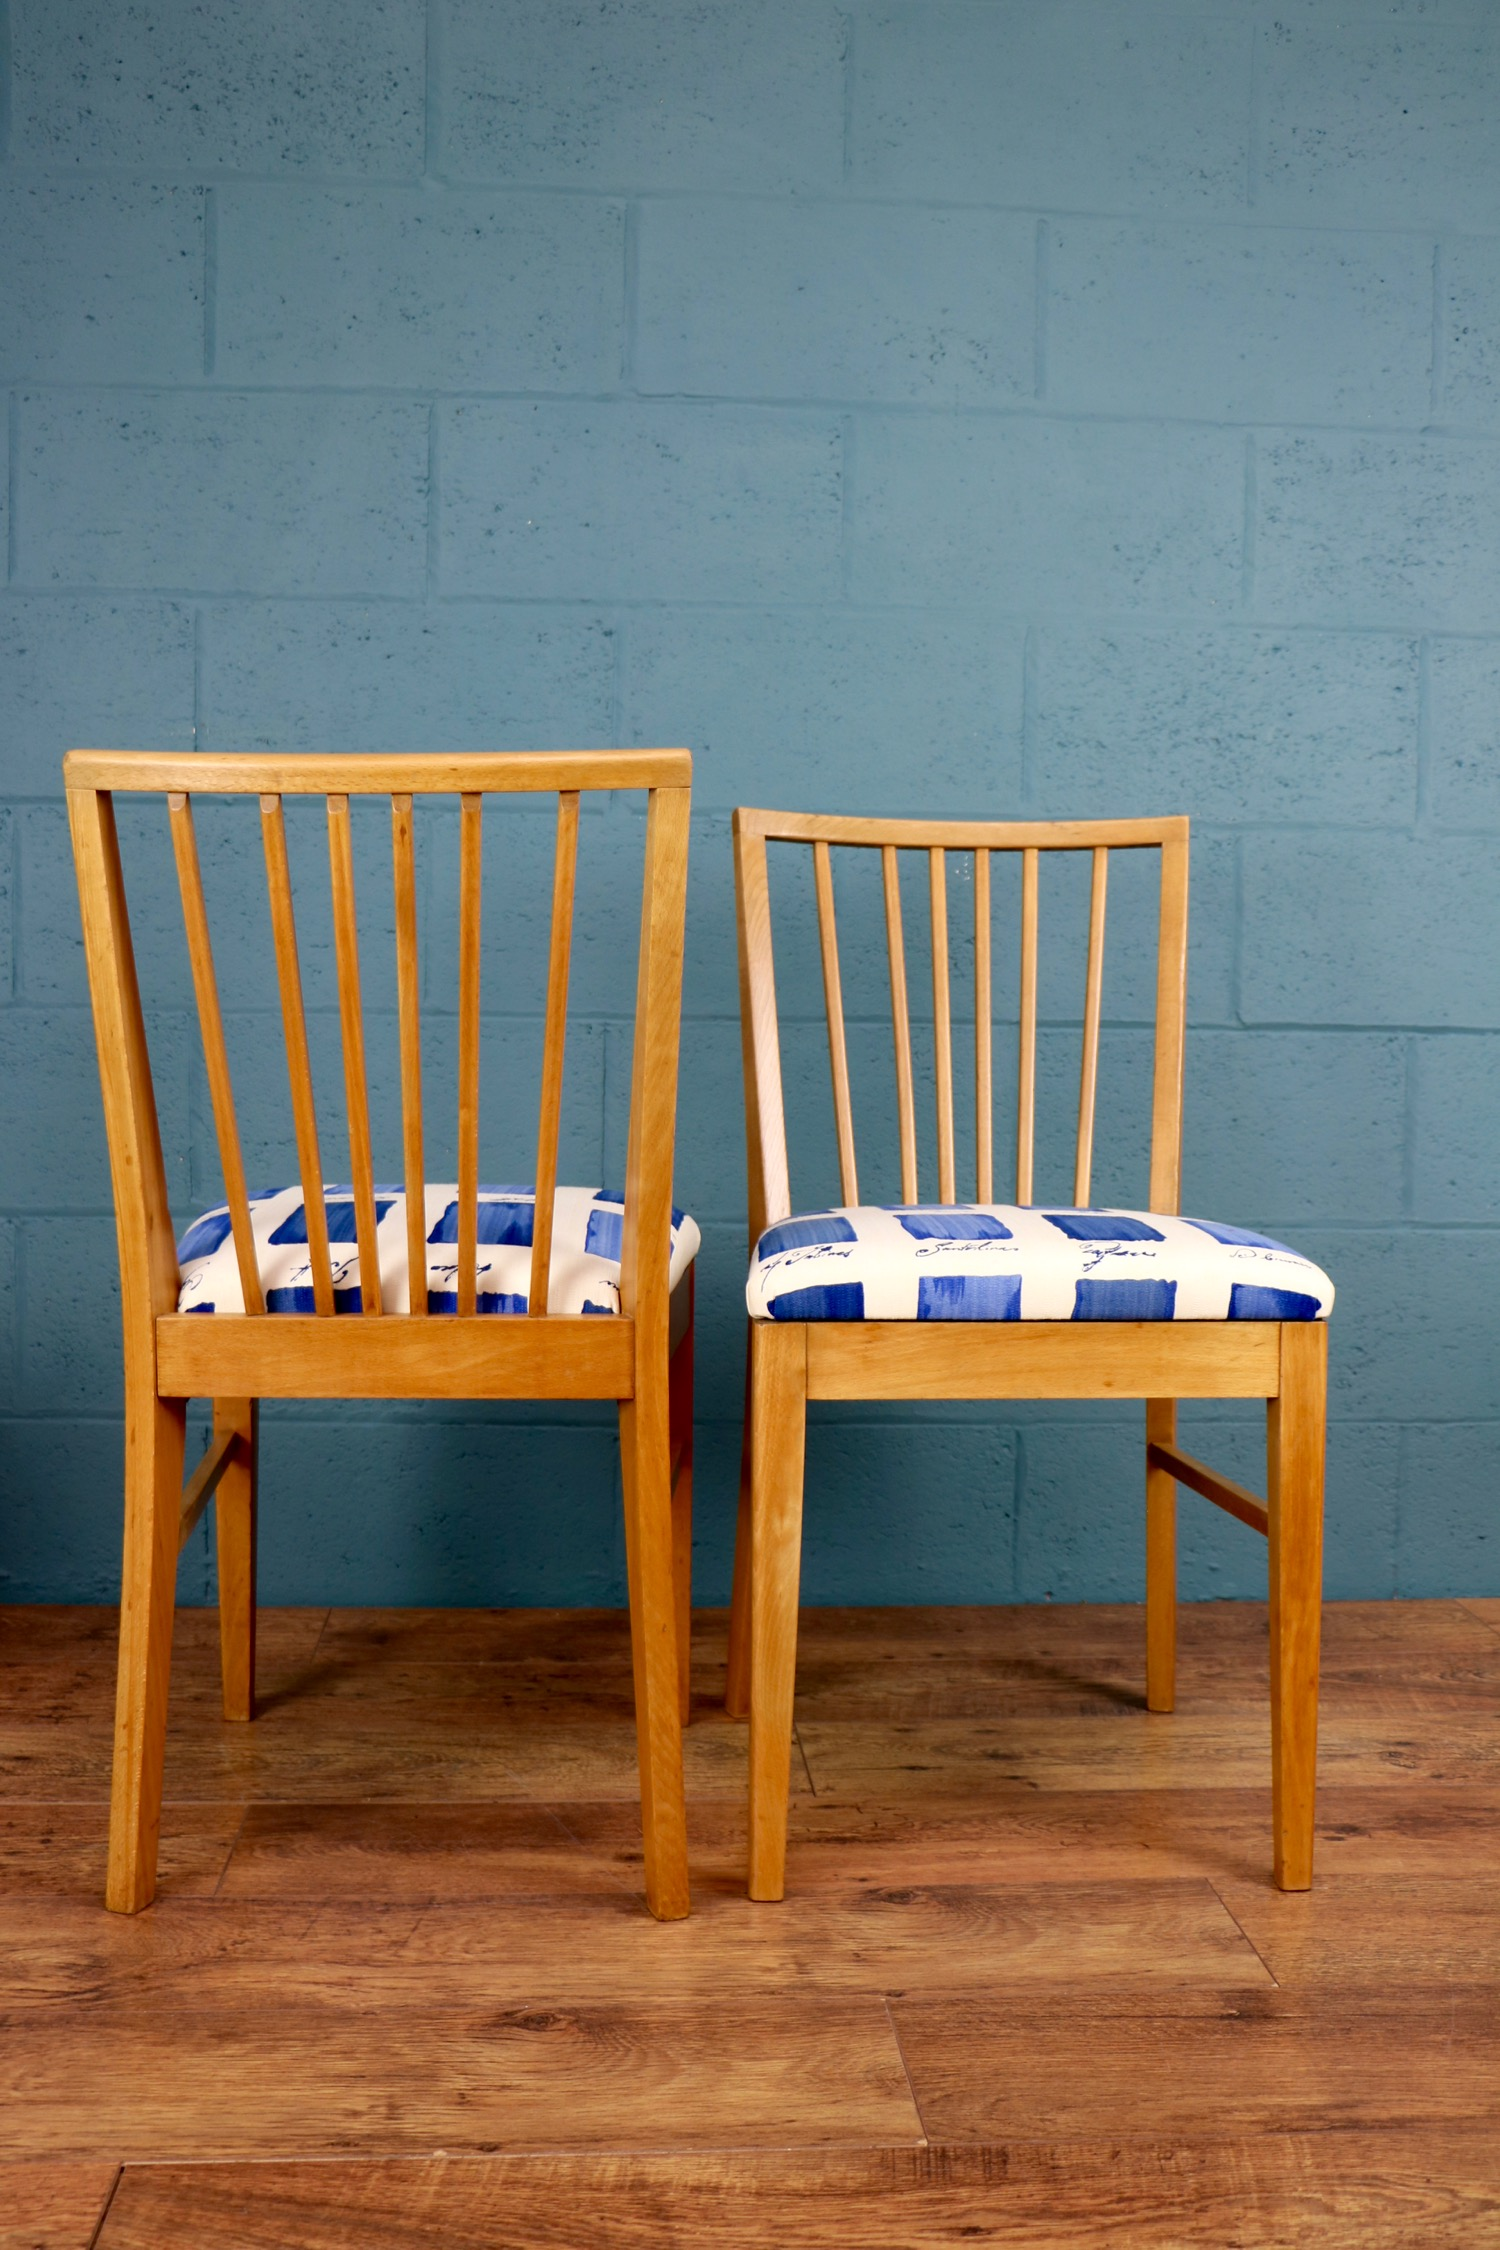 - Chairs have arrived today. Perfect and SO beautifully packed.Thank you!Tina, Devizes